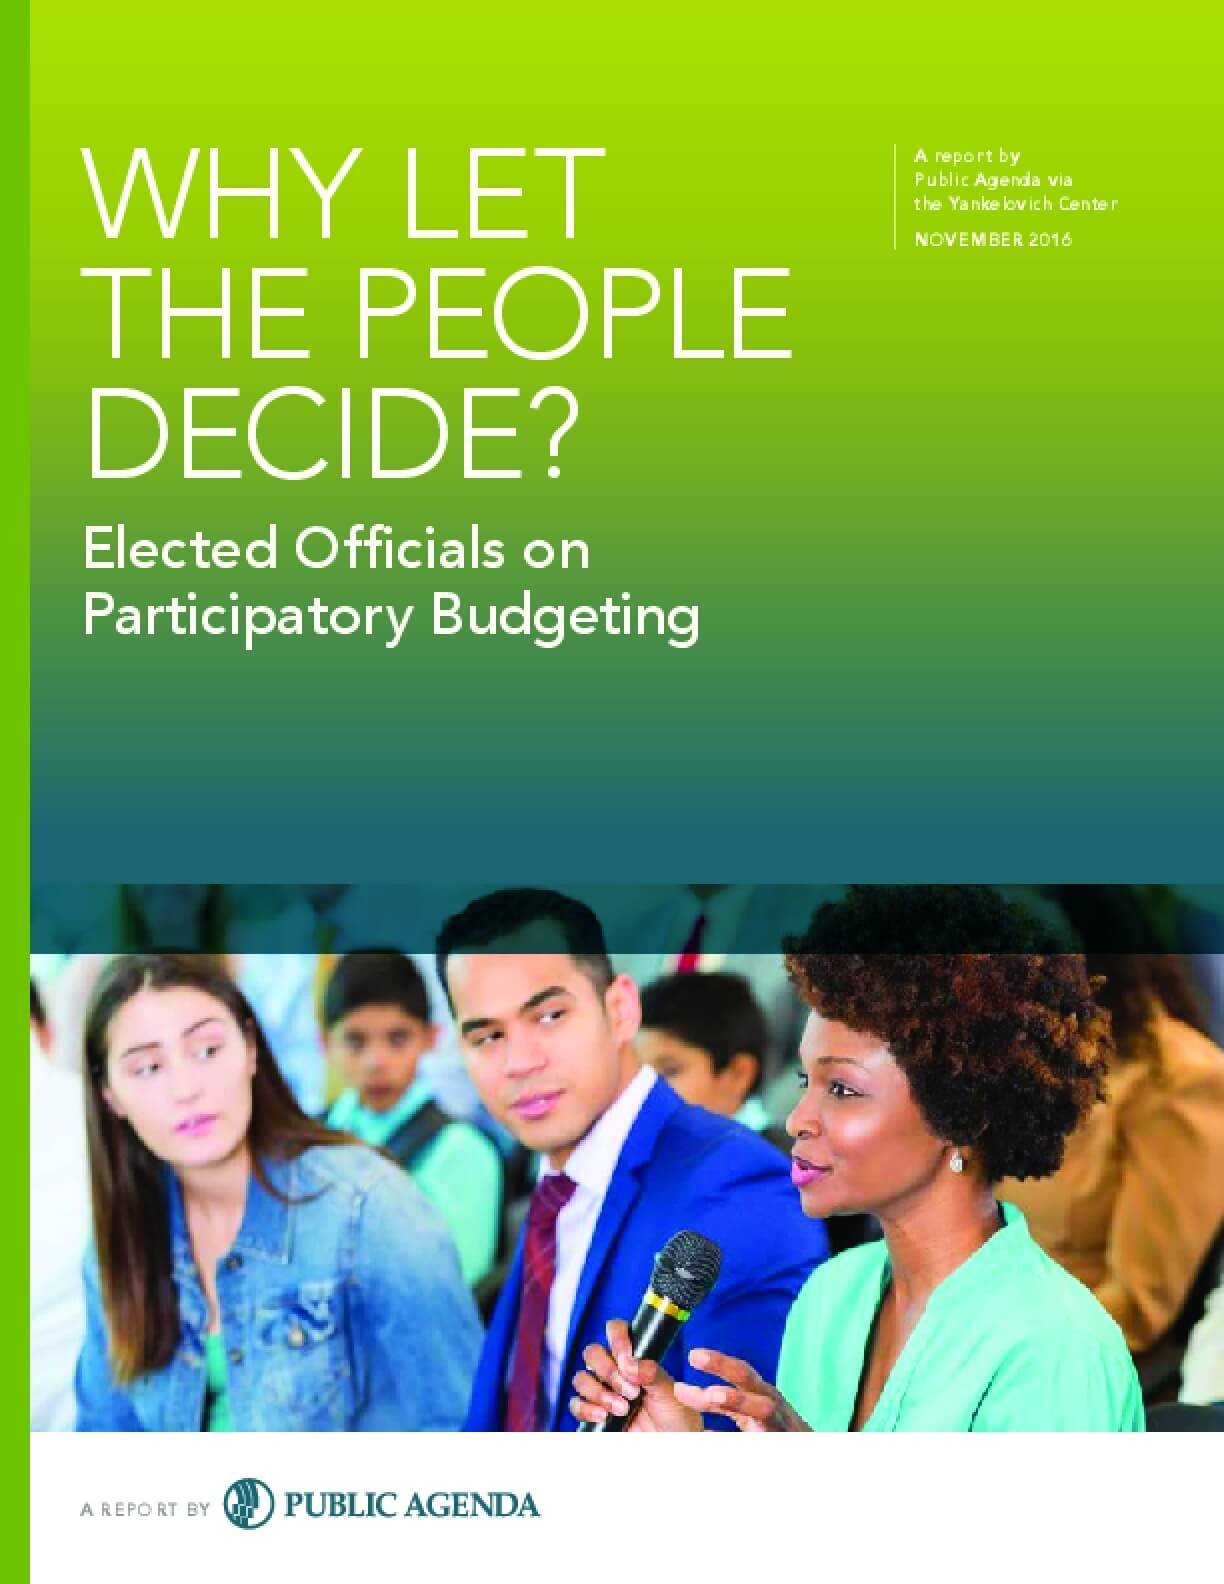 Why Let the People Decide? Elected Officials on Participatory Budgeting